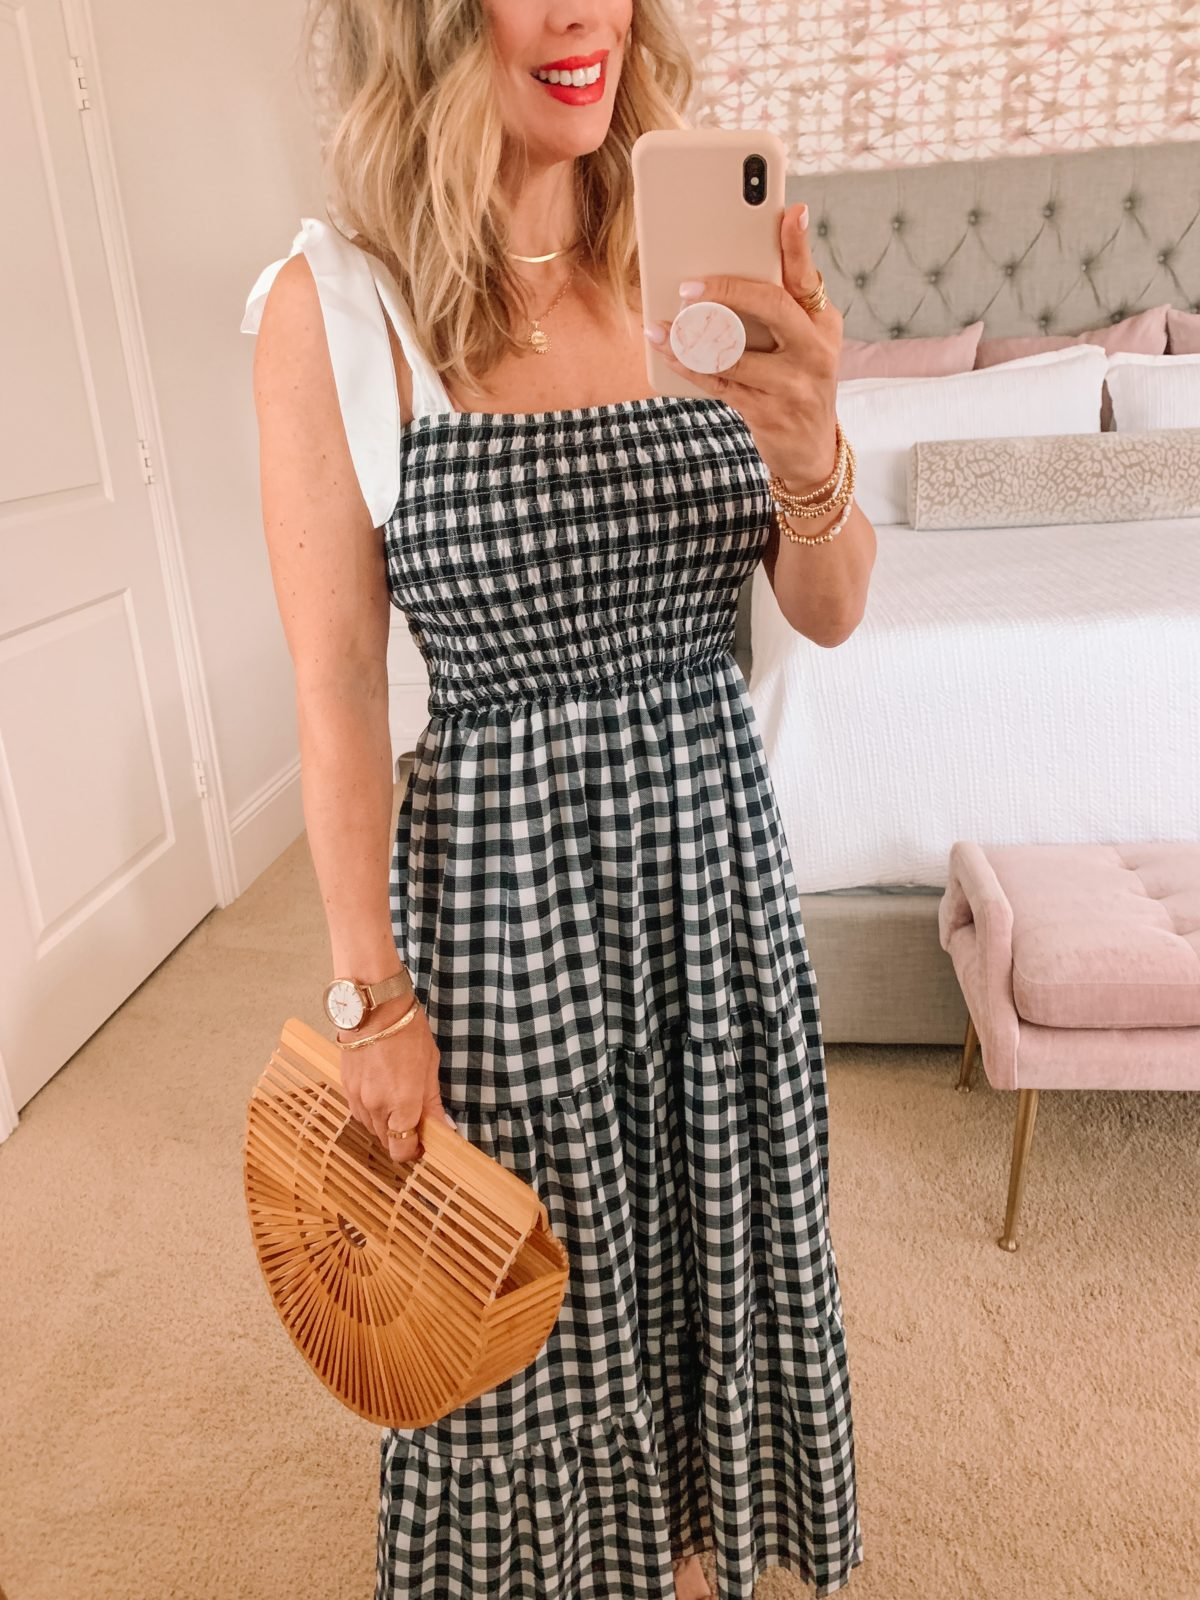 Amazon Fashion Faves, Gingham Dress and Sandals, Bamboo Clutch